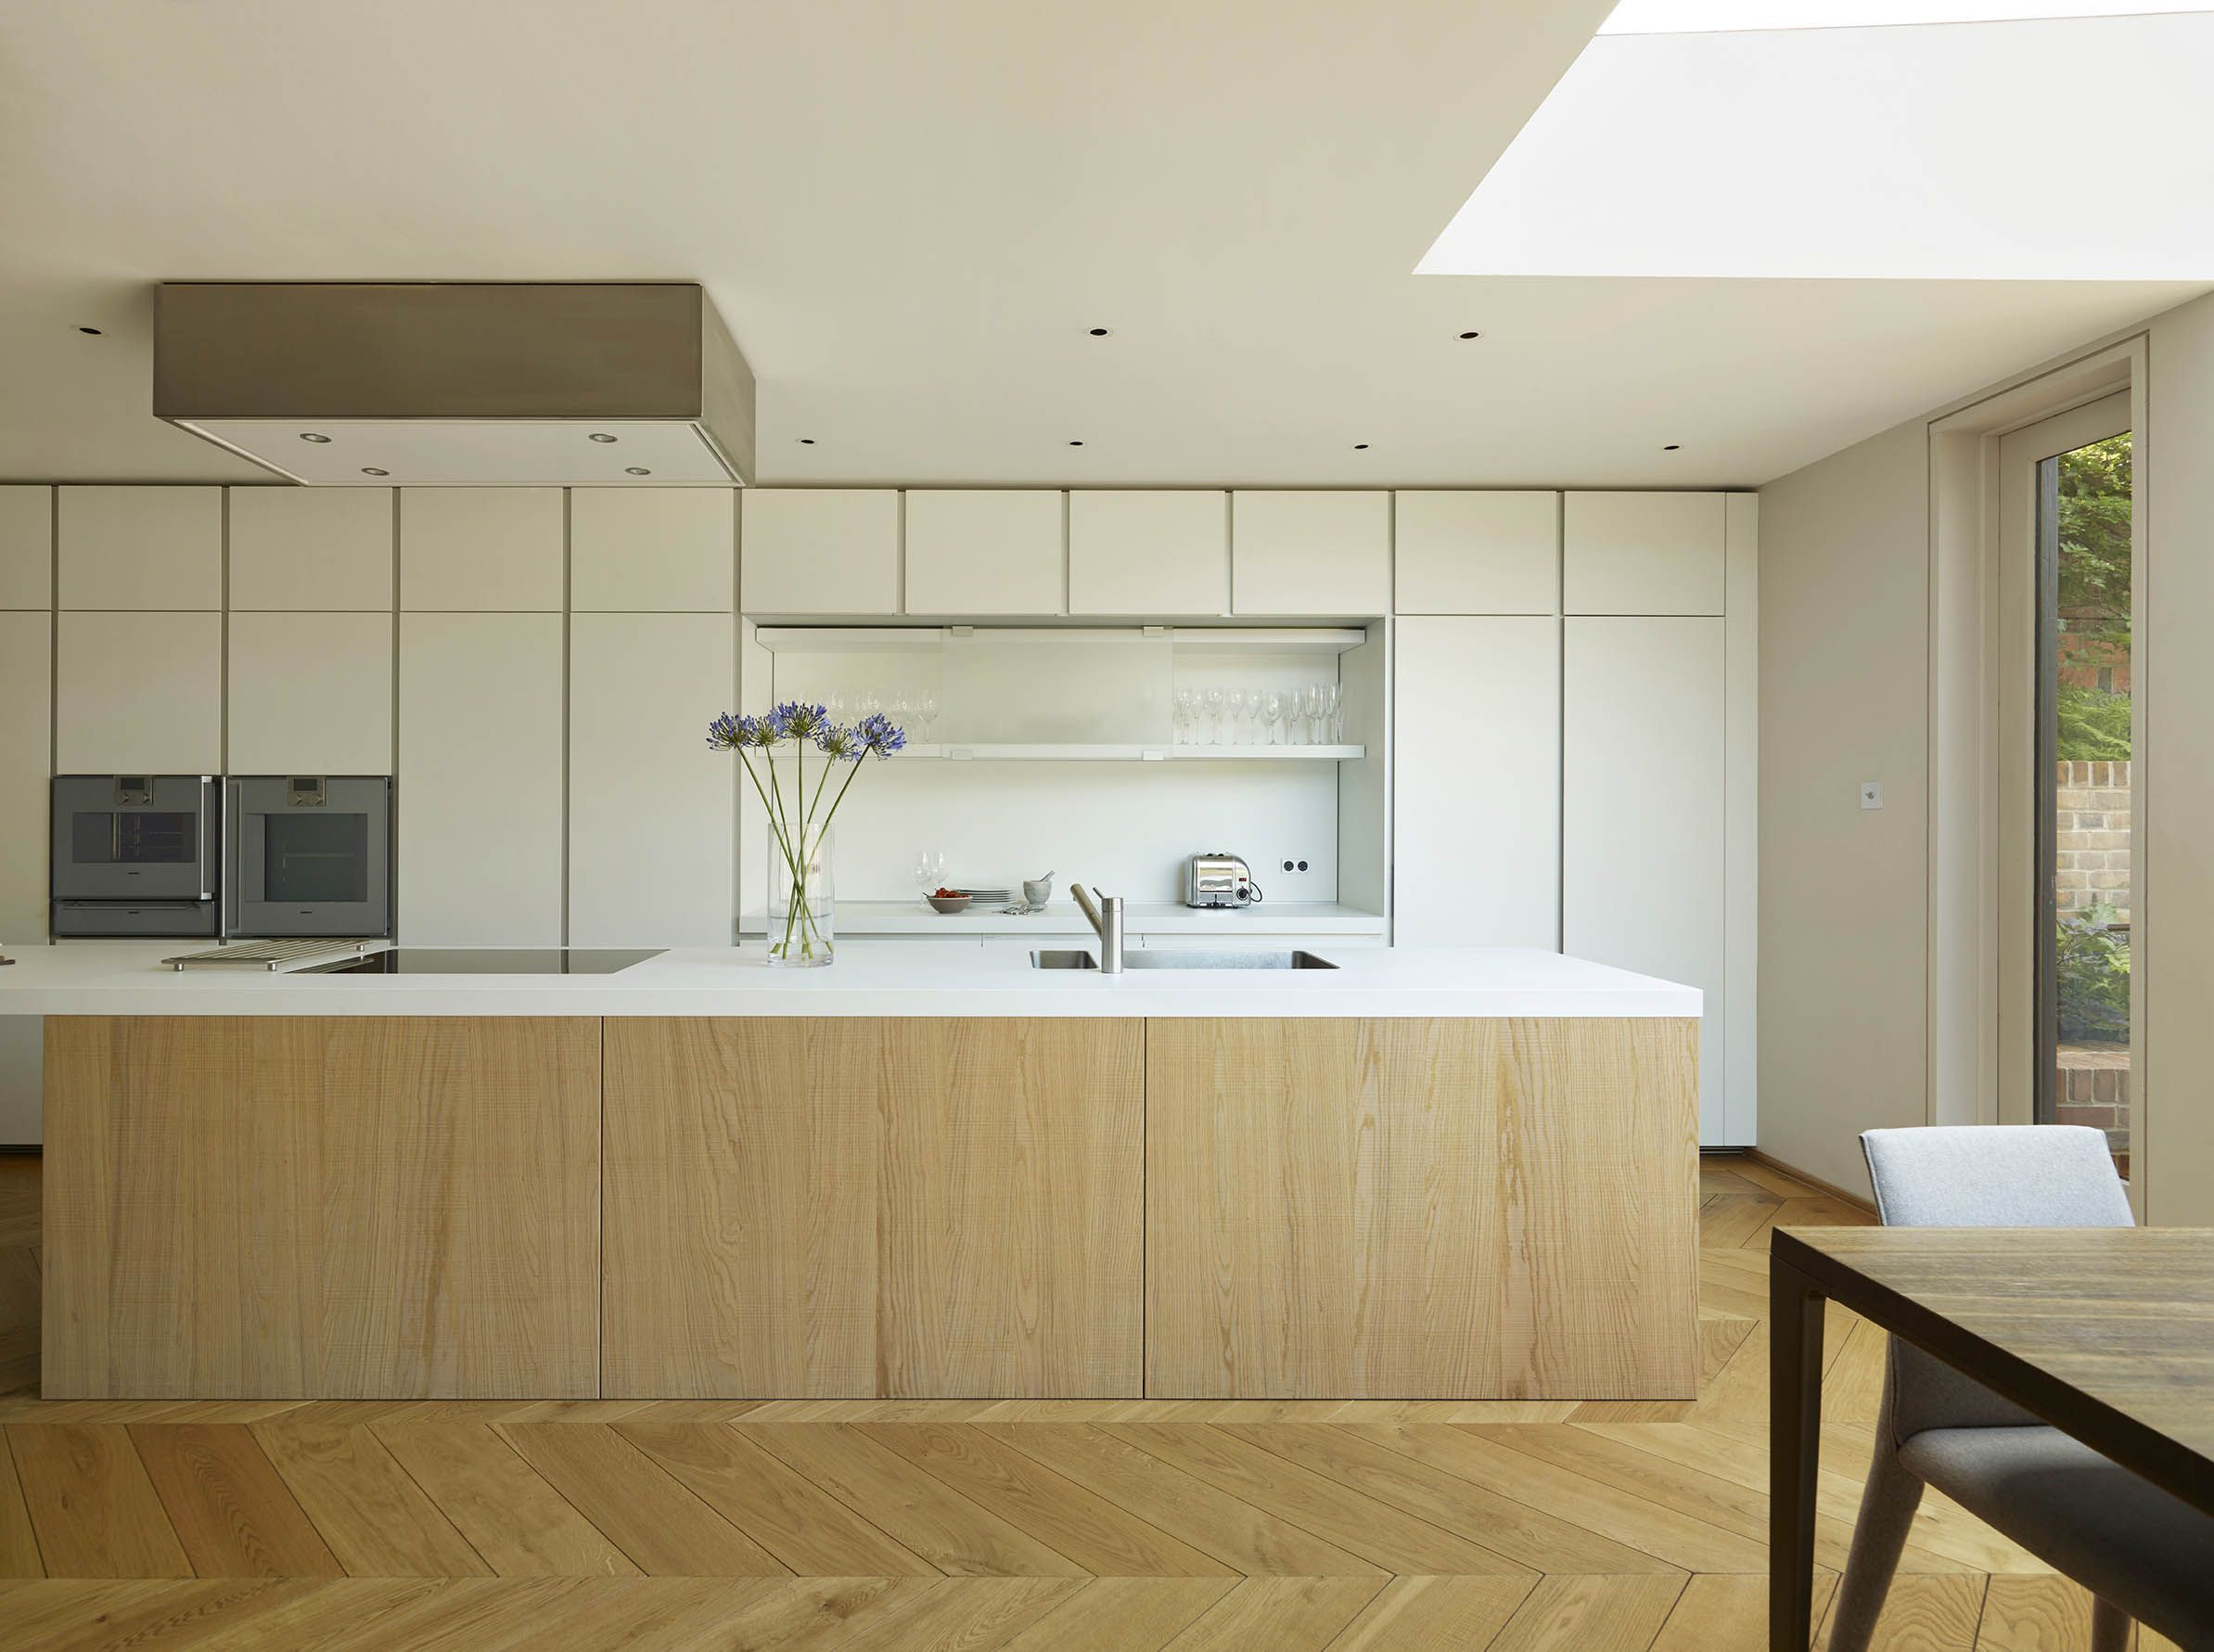 bulthaup by Kitchen Architecture #kitchens | For the kitchen | Pinterest